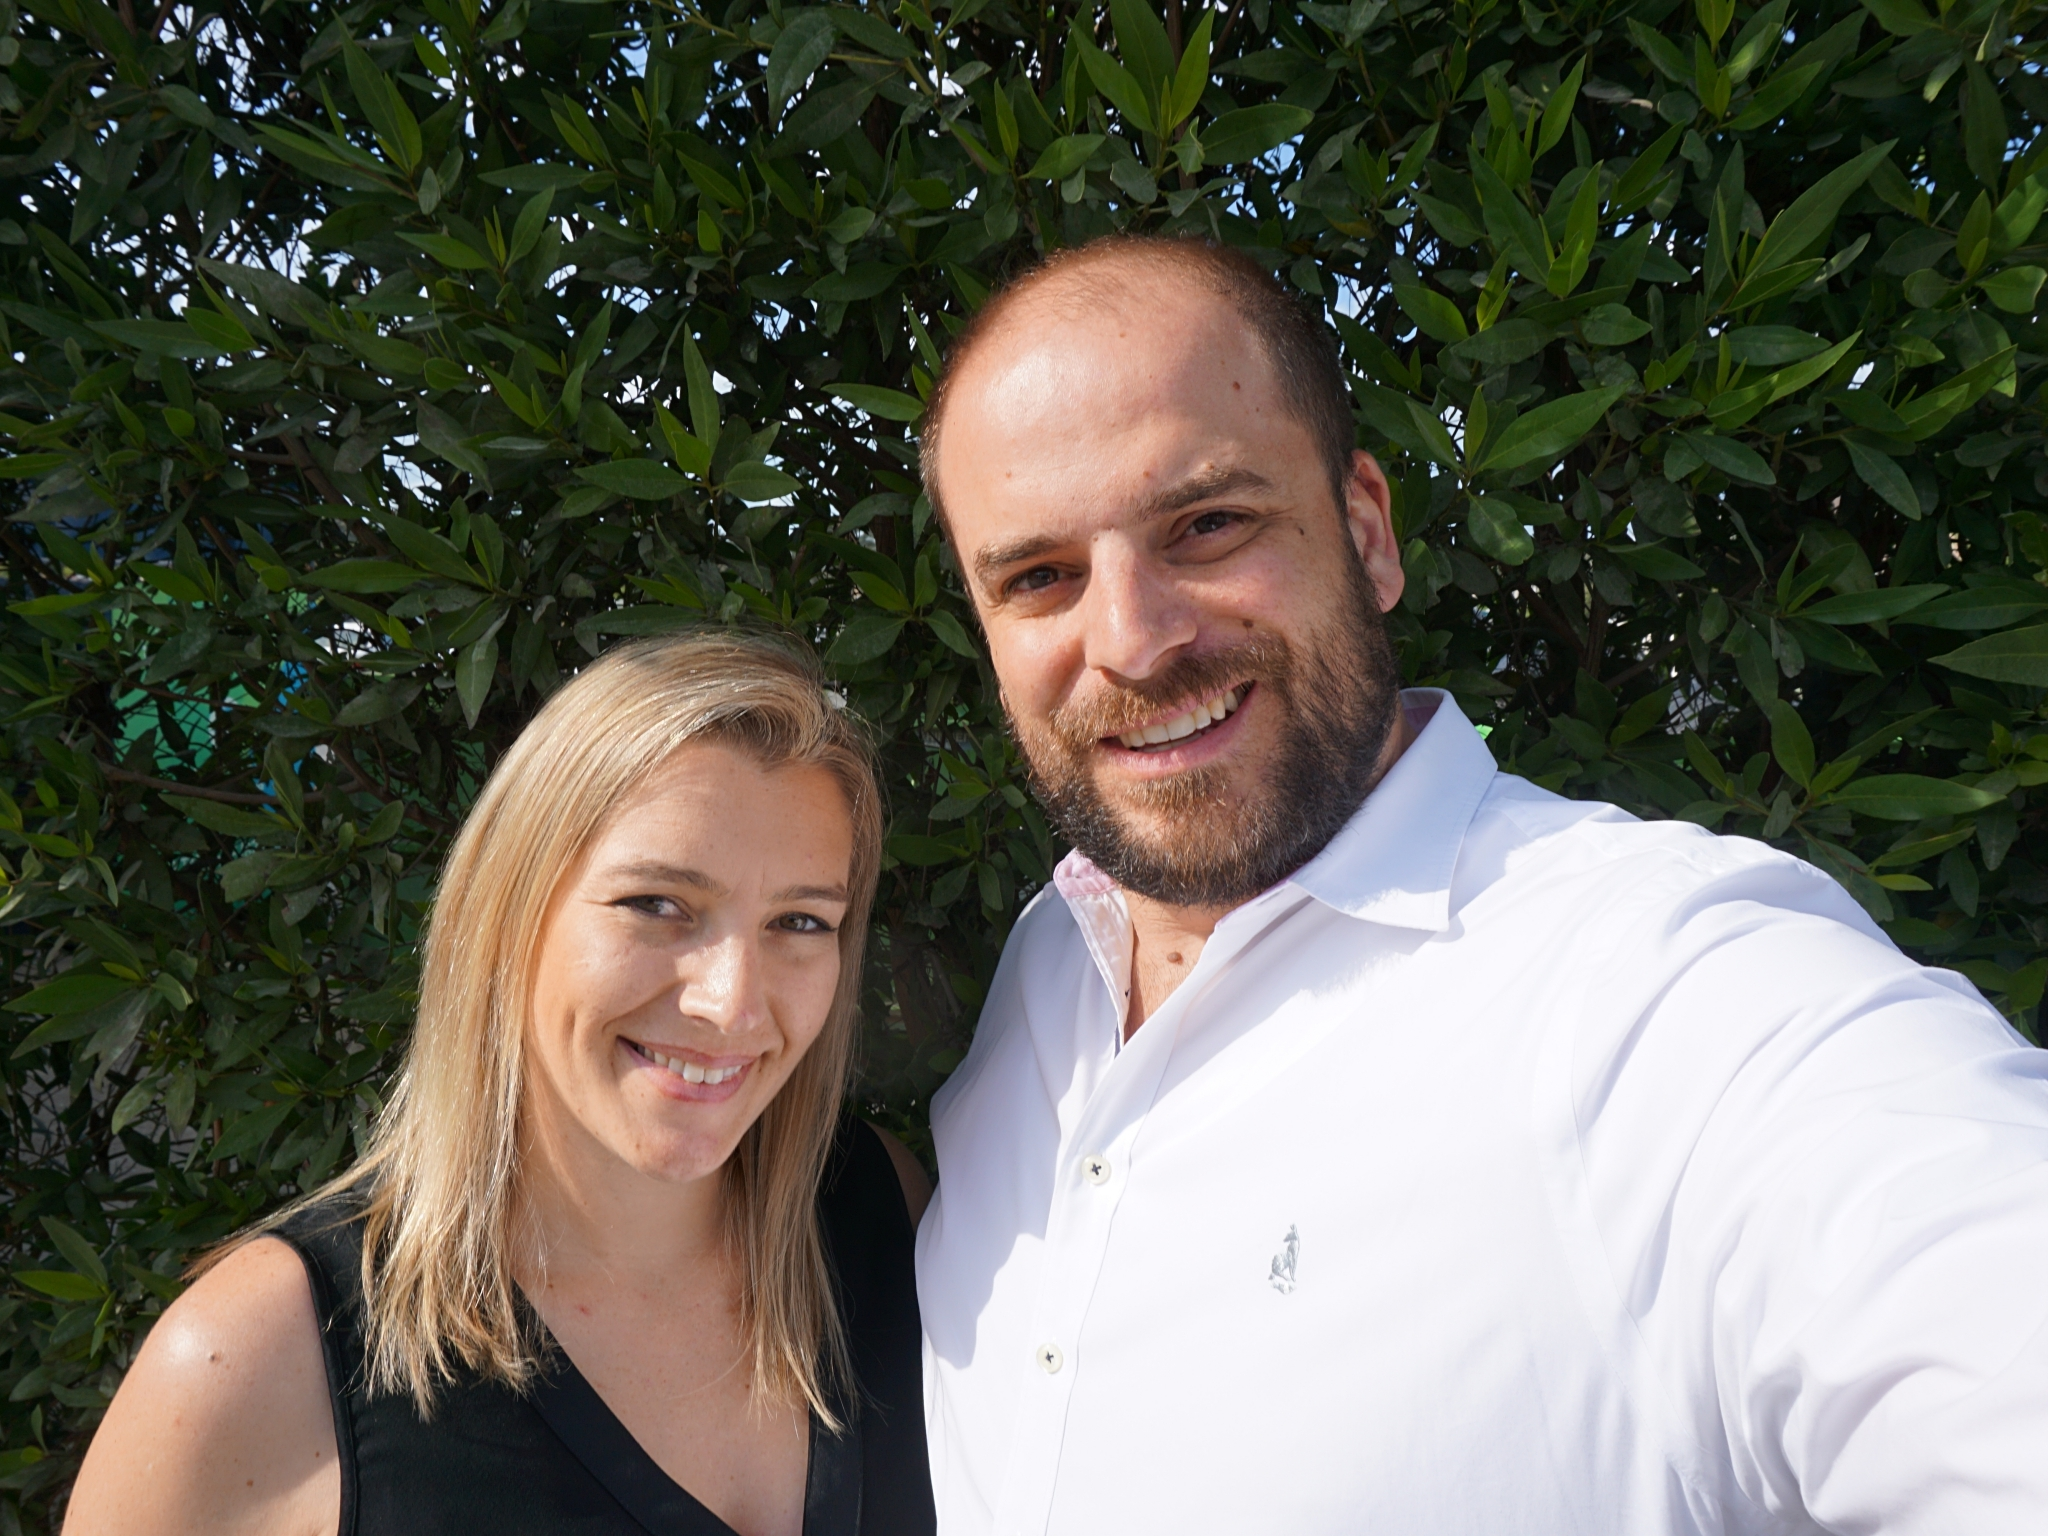 Michael and Jessica Noble, Aussie expats in Dubai